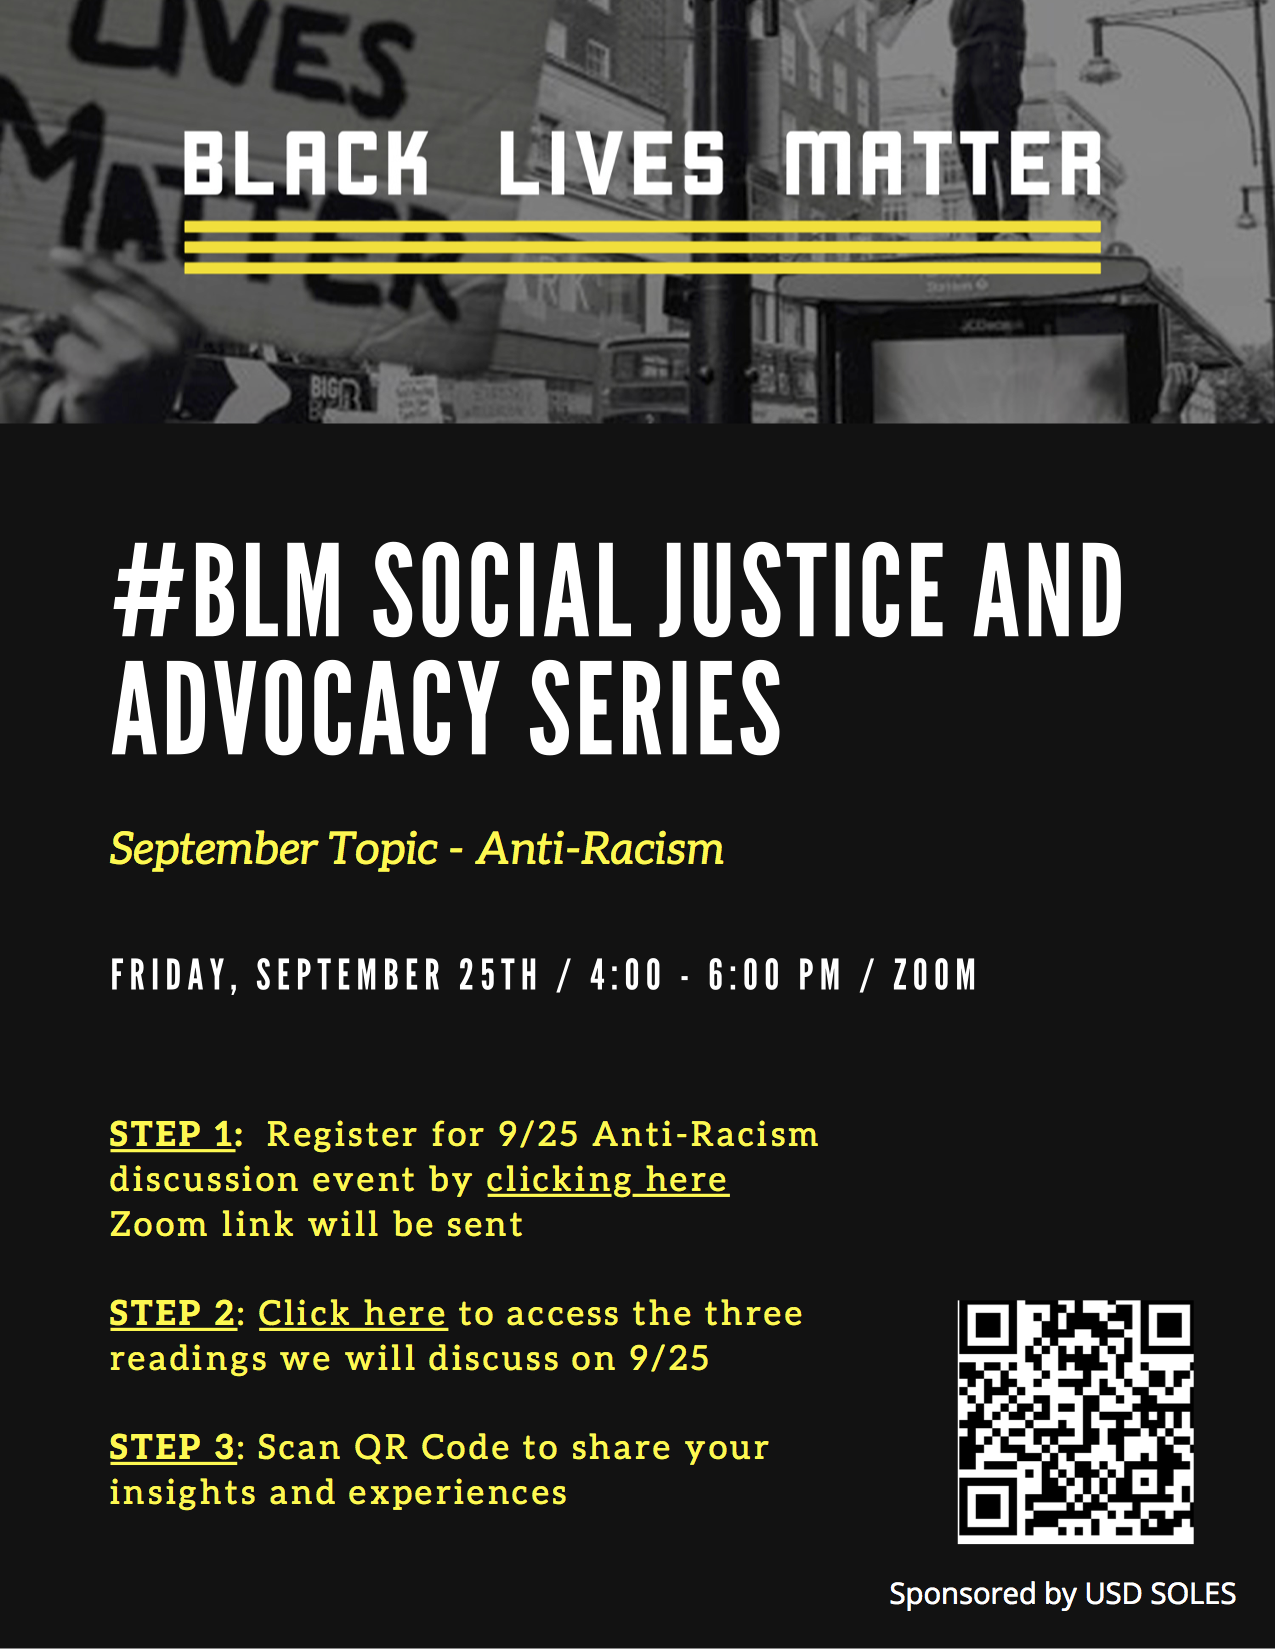 BLM Event Flyer